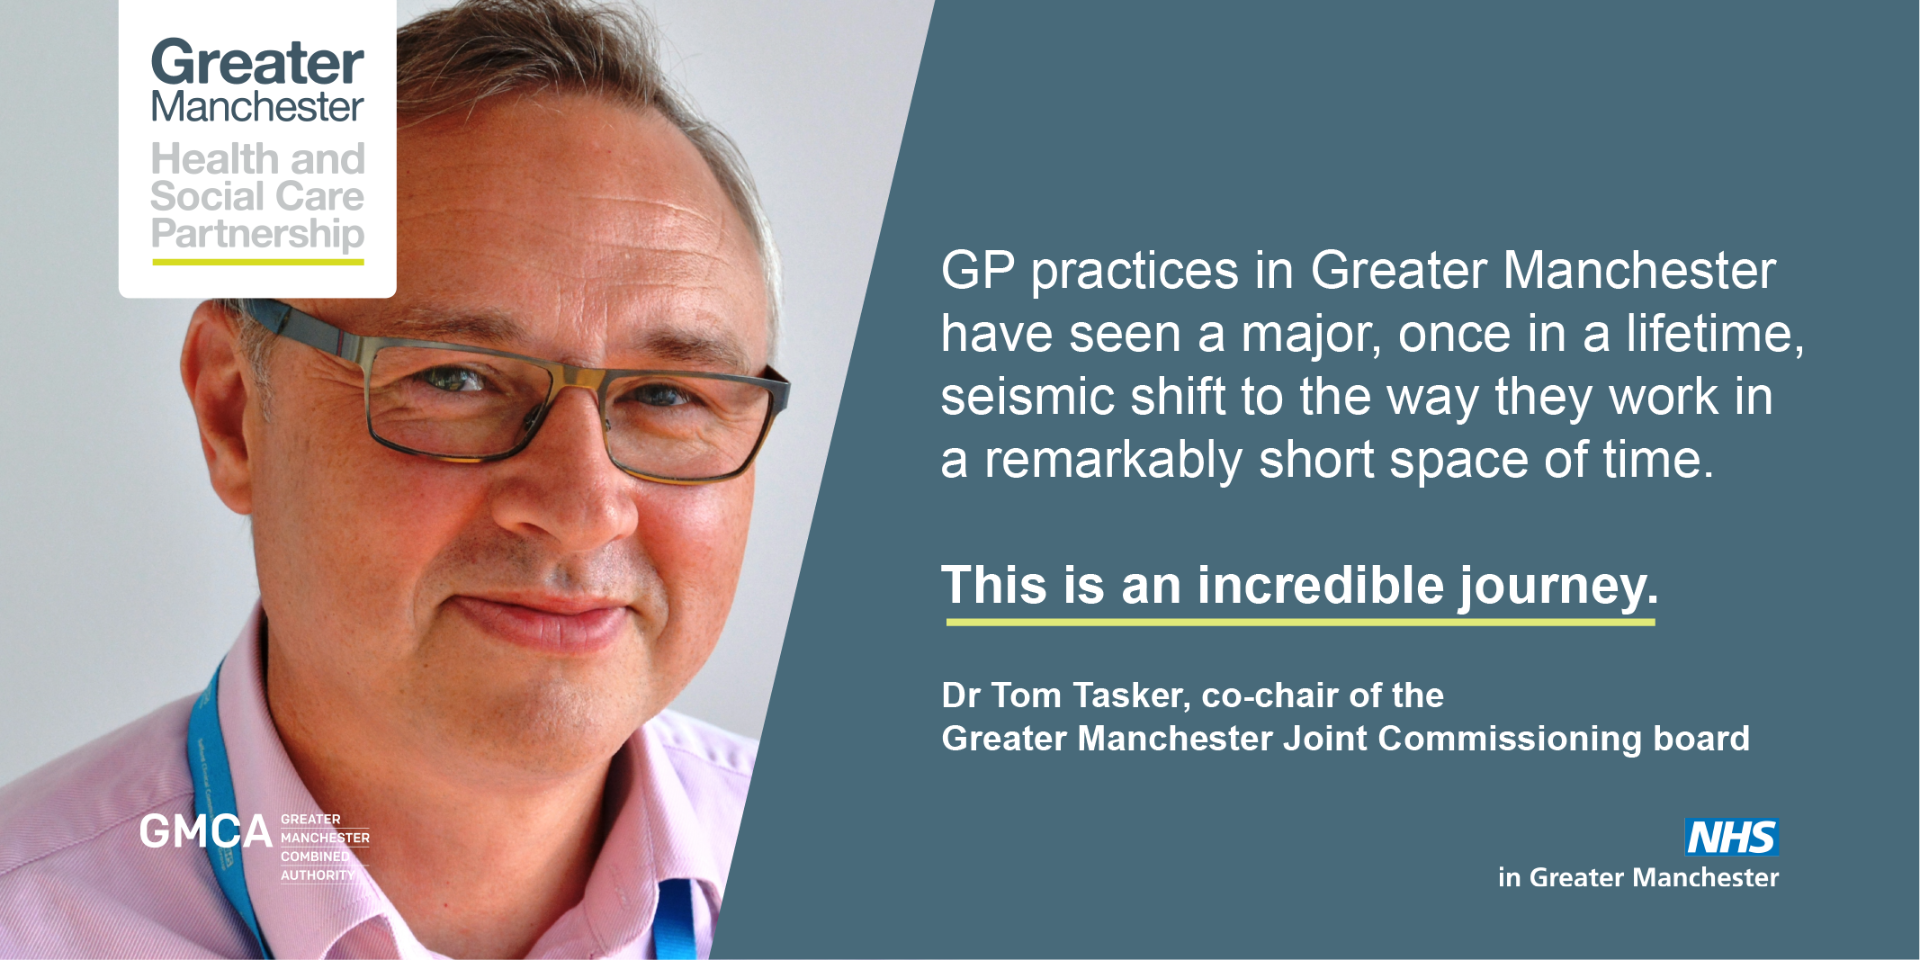 Quote from Dr Tom Tasker, chair of Salford CCG and co-chair of the Greater Manchester Joint Commissioning Board.